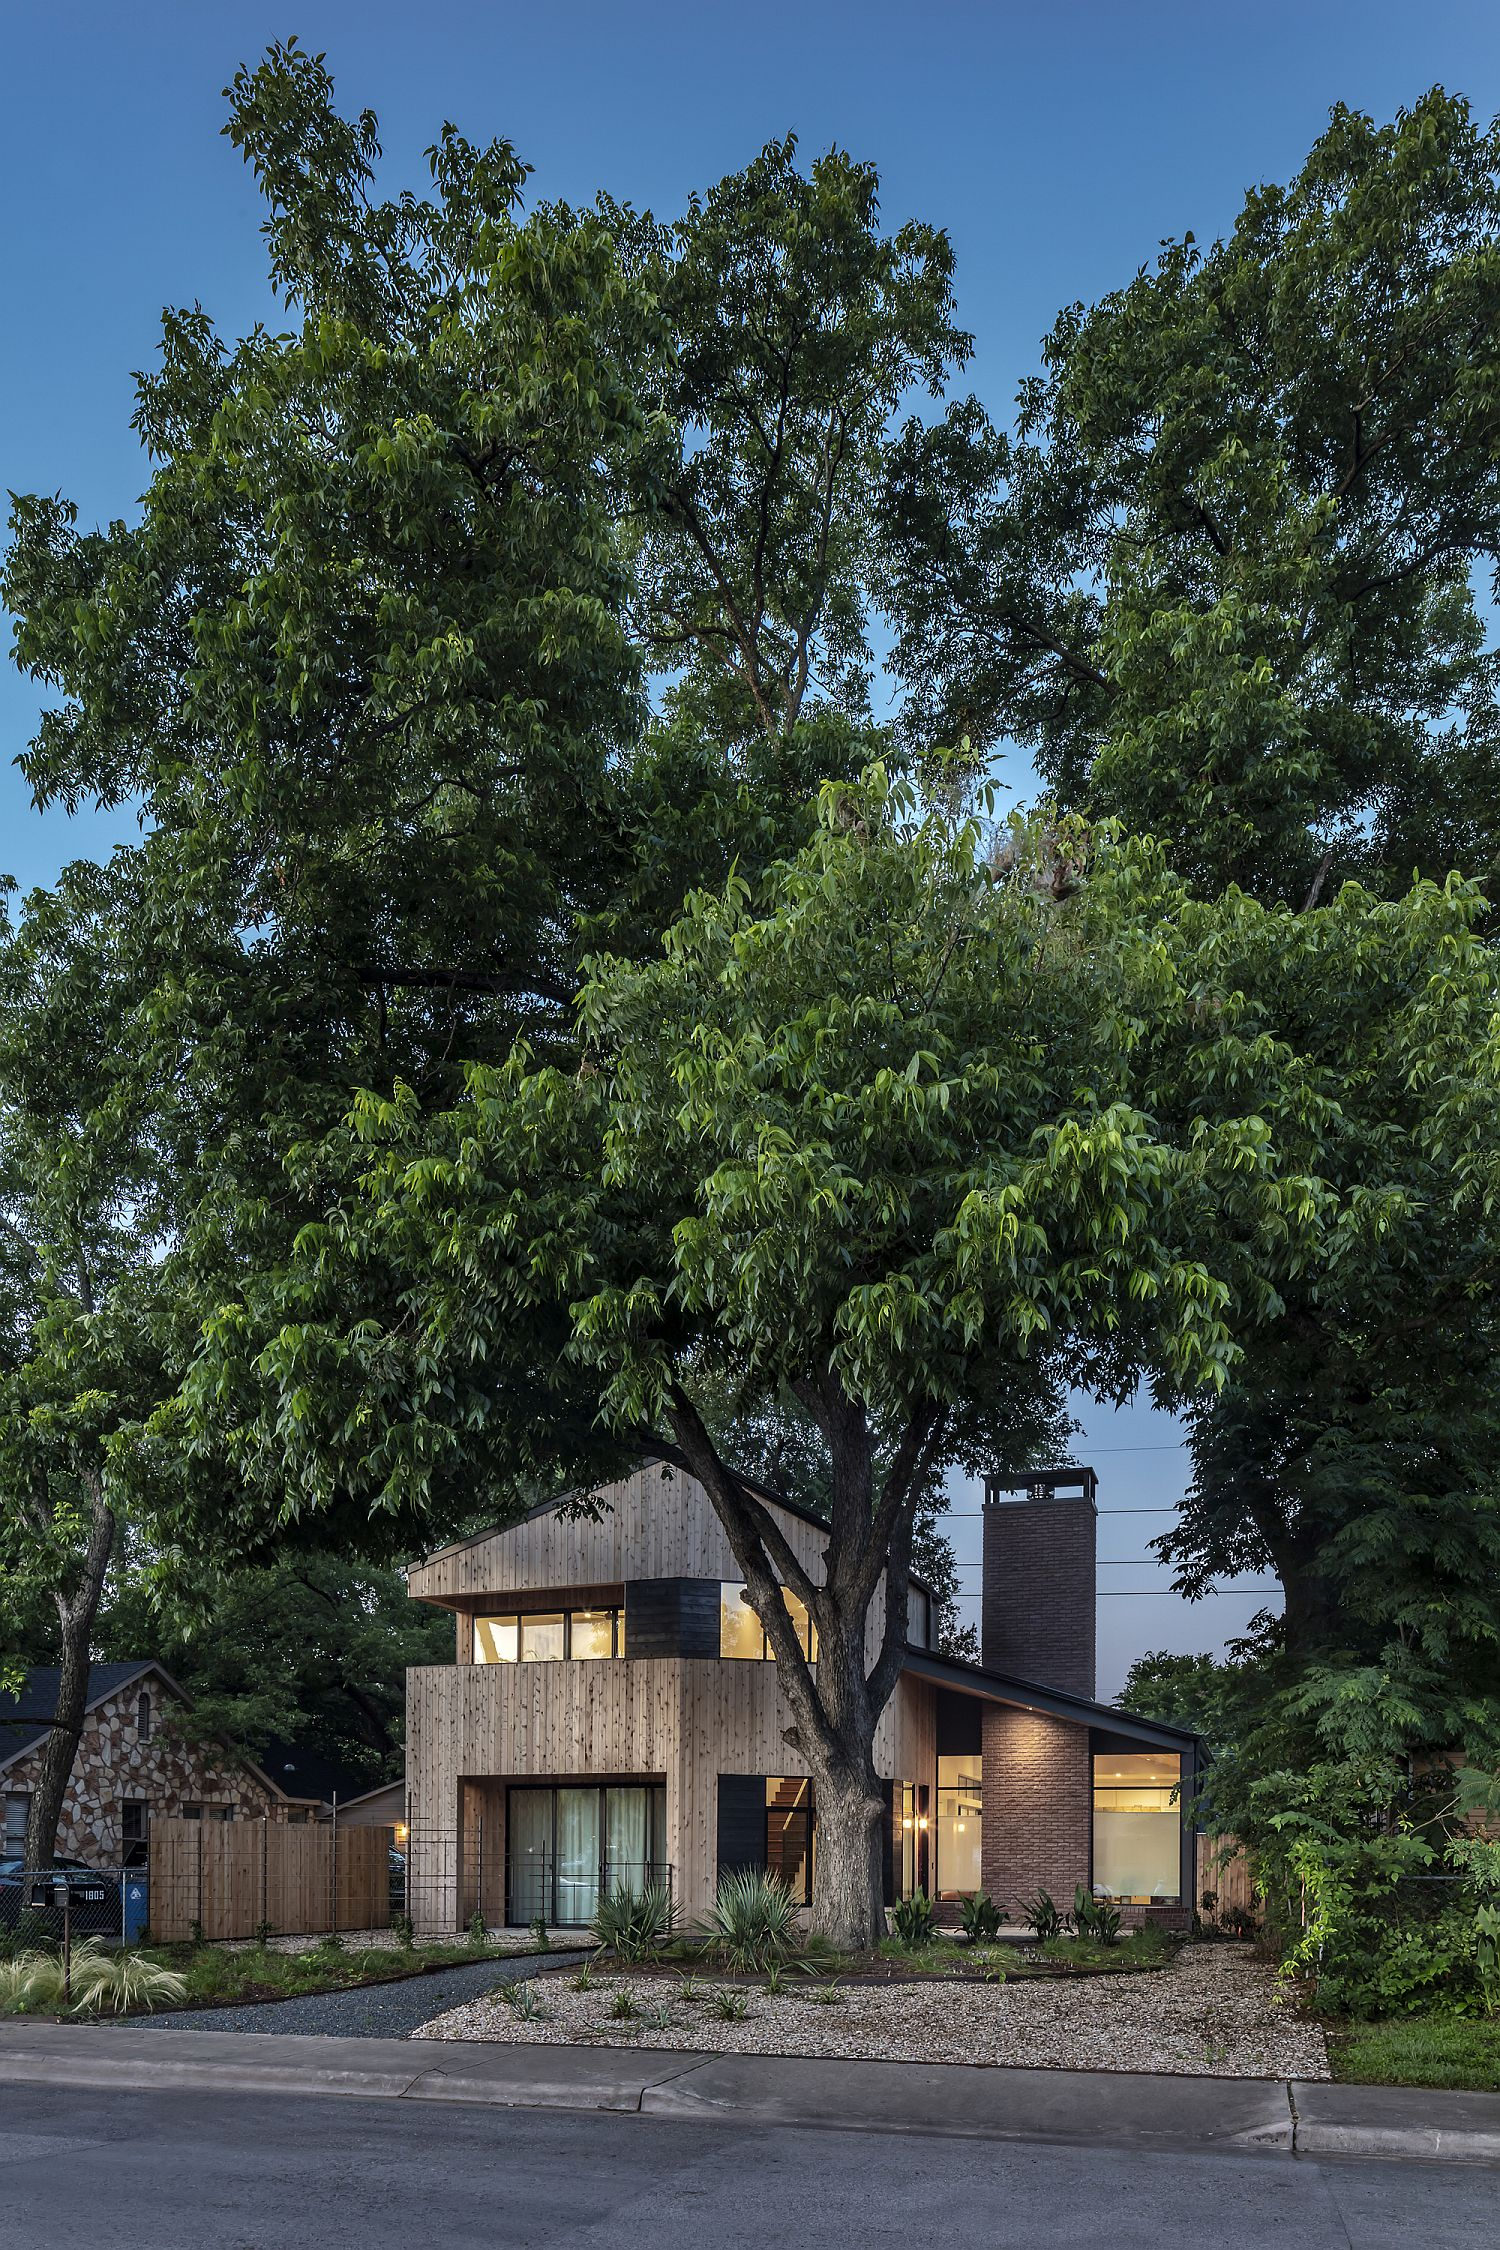 Trees around the house shapeits facade and overall appeal